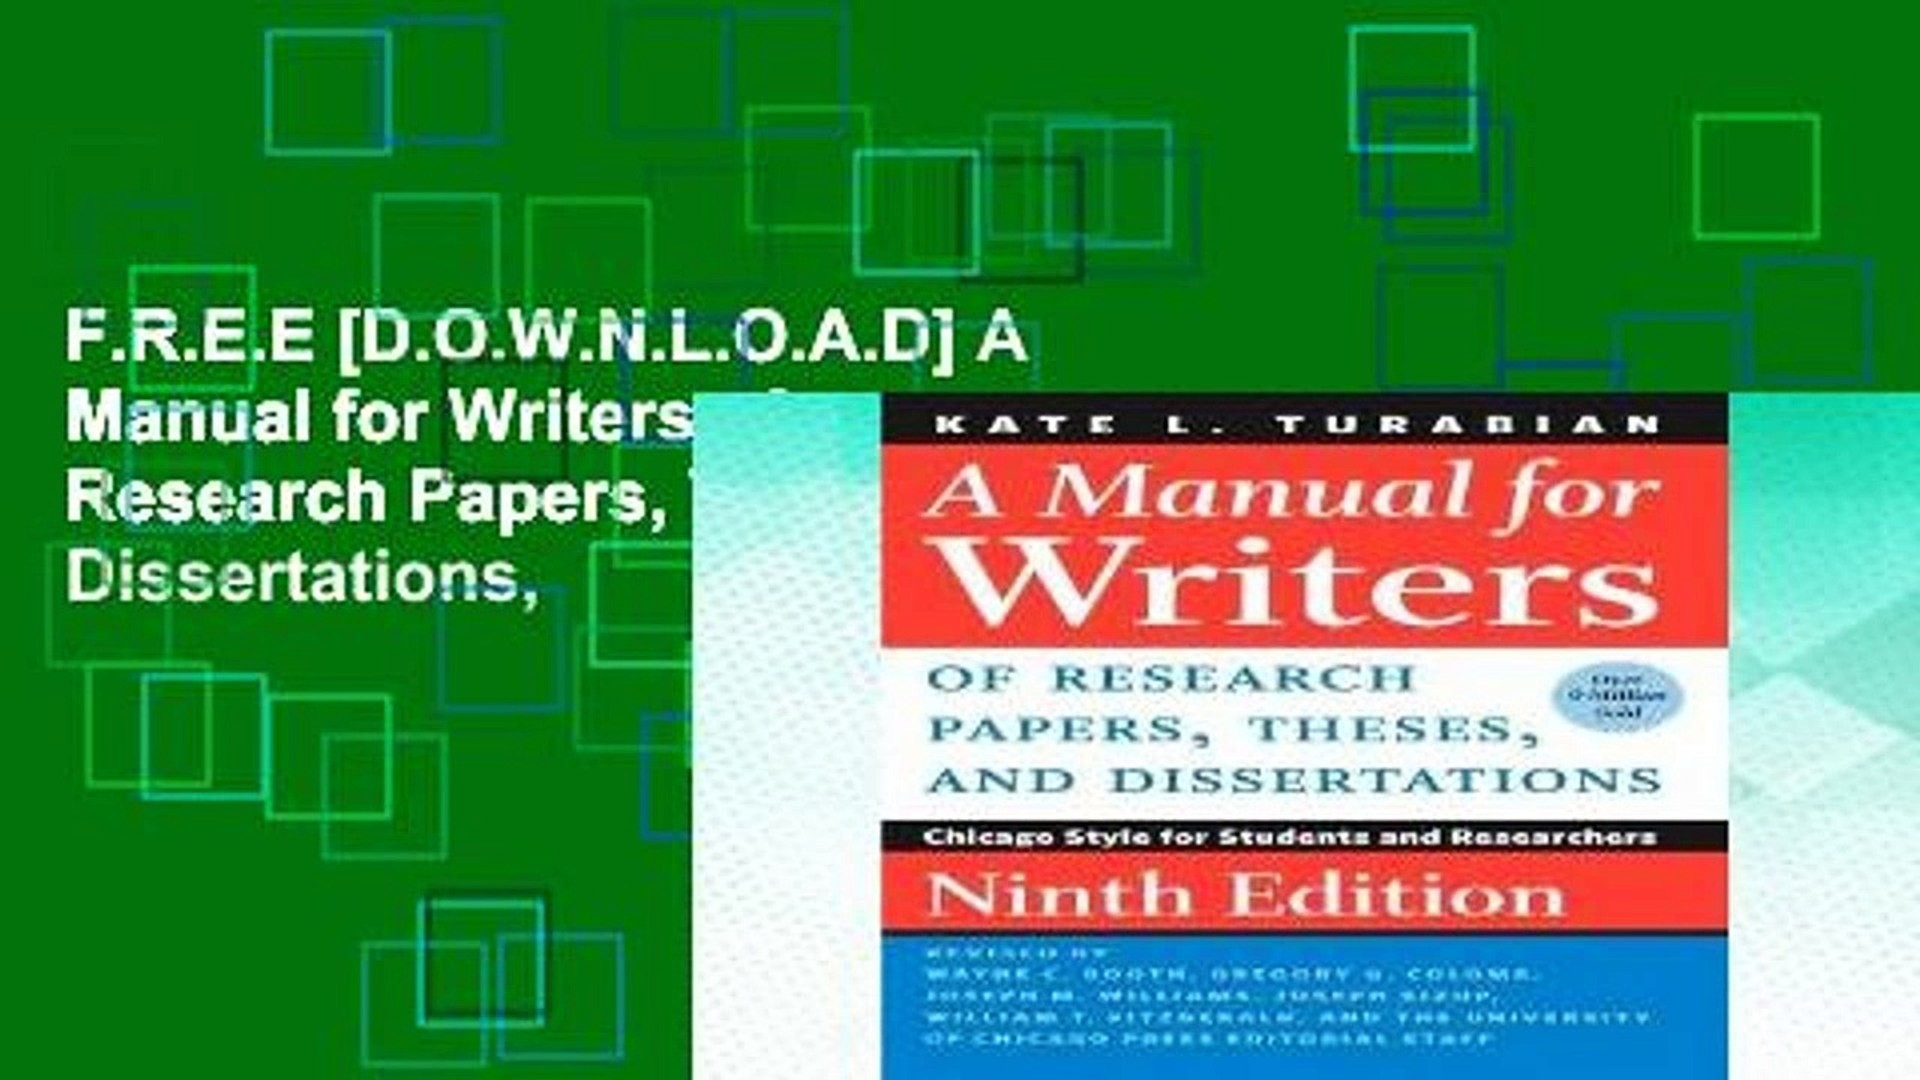 010 X1080 Kcn Research Paper Manual For Writers Of Papers Theses And Dissertations 9th Frightening A Edition Pdf 1920